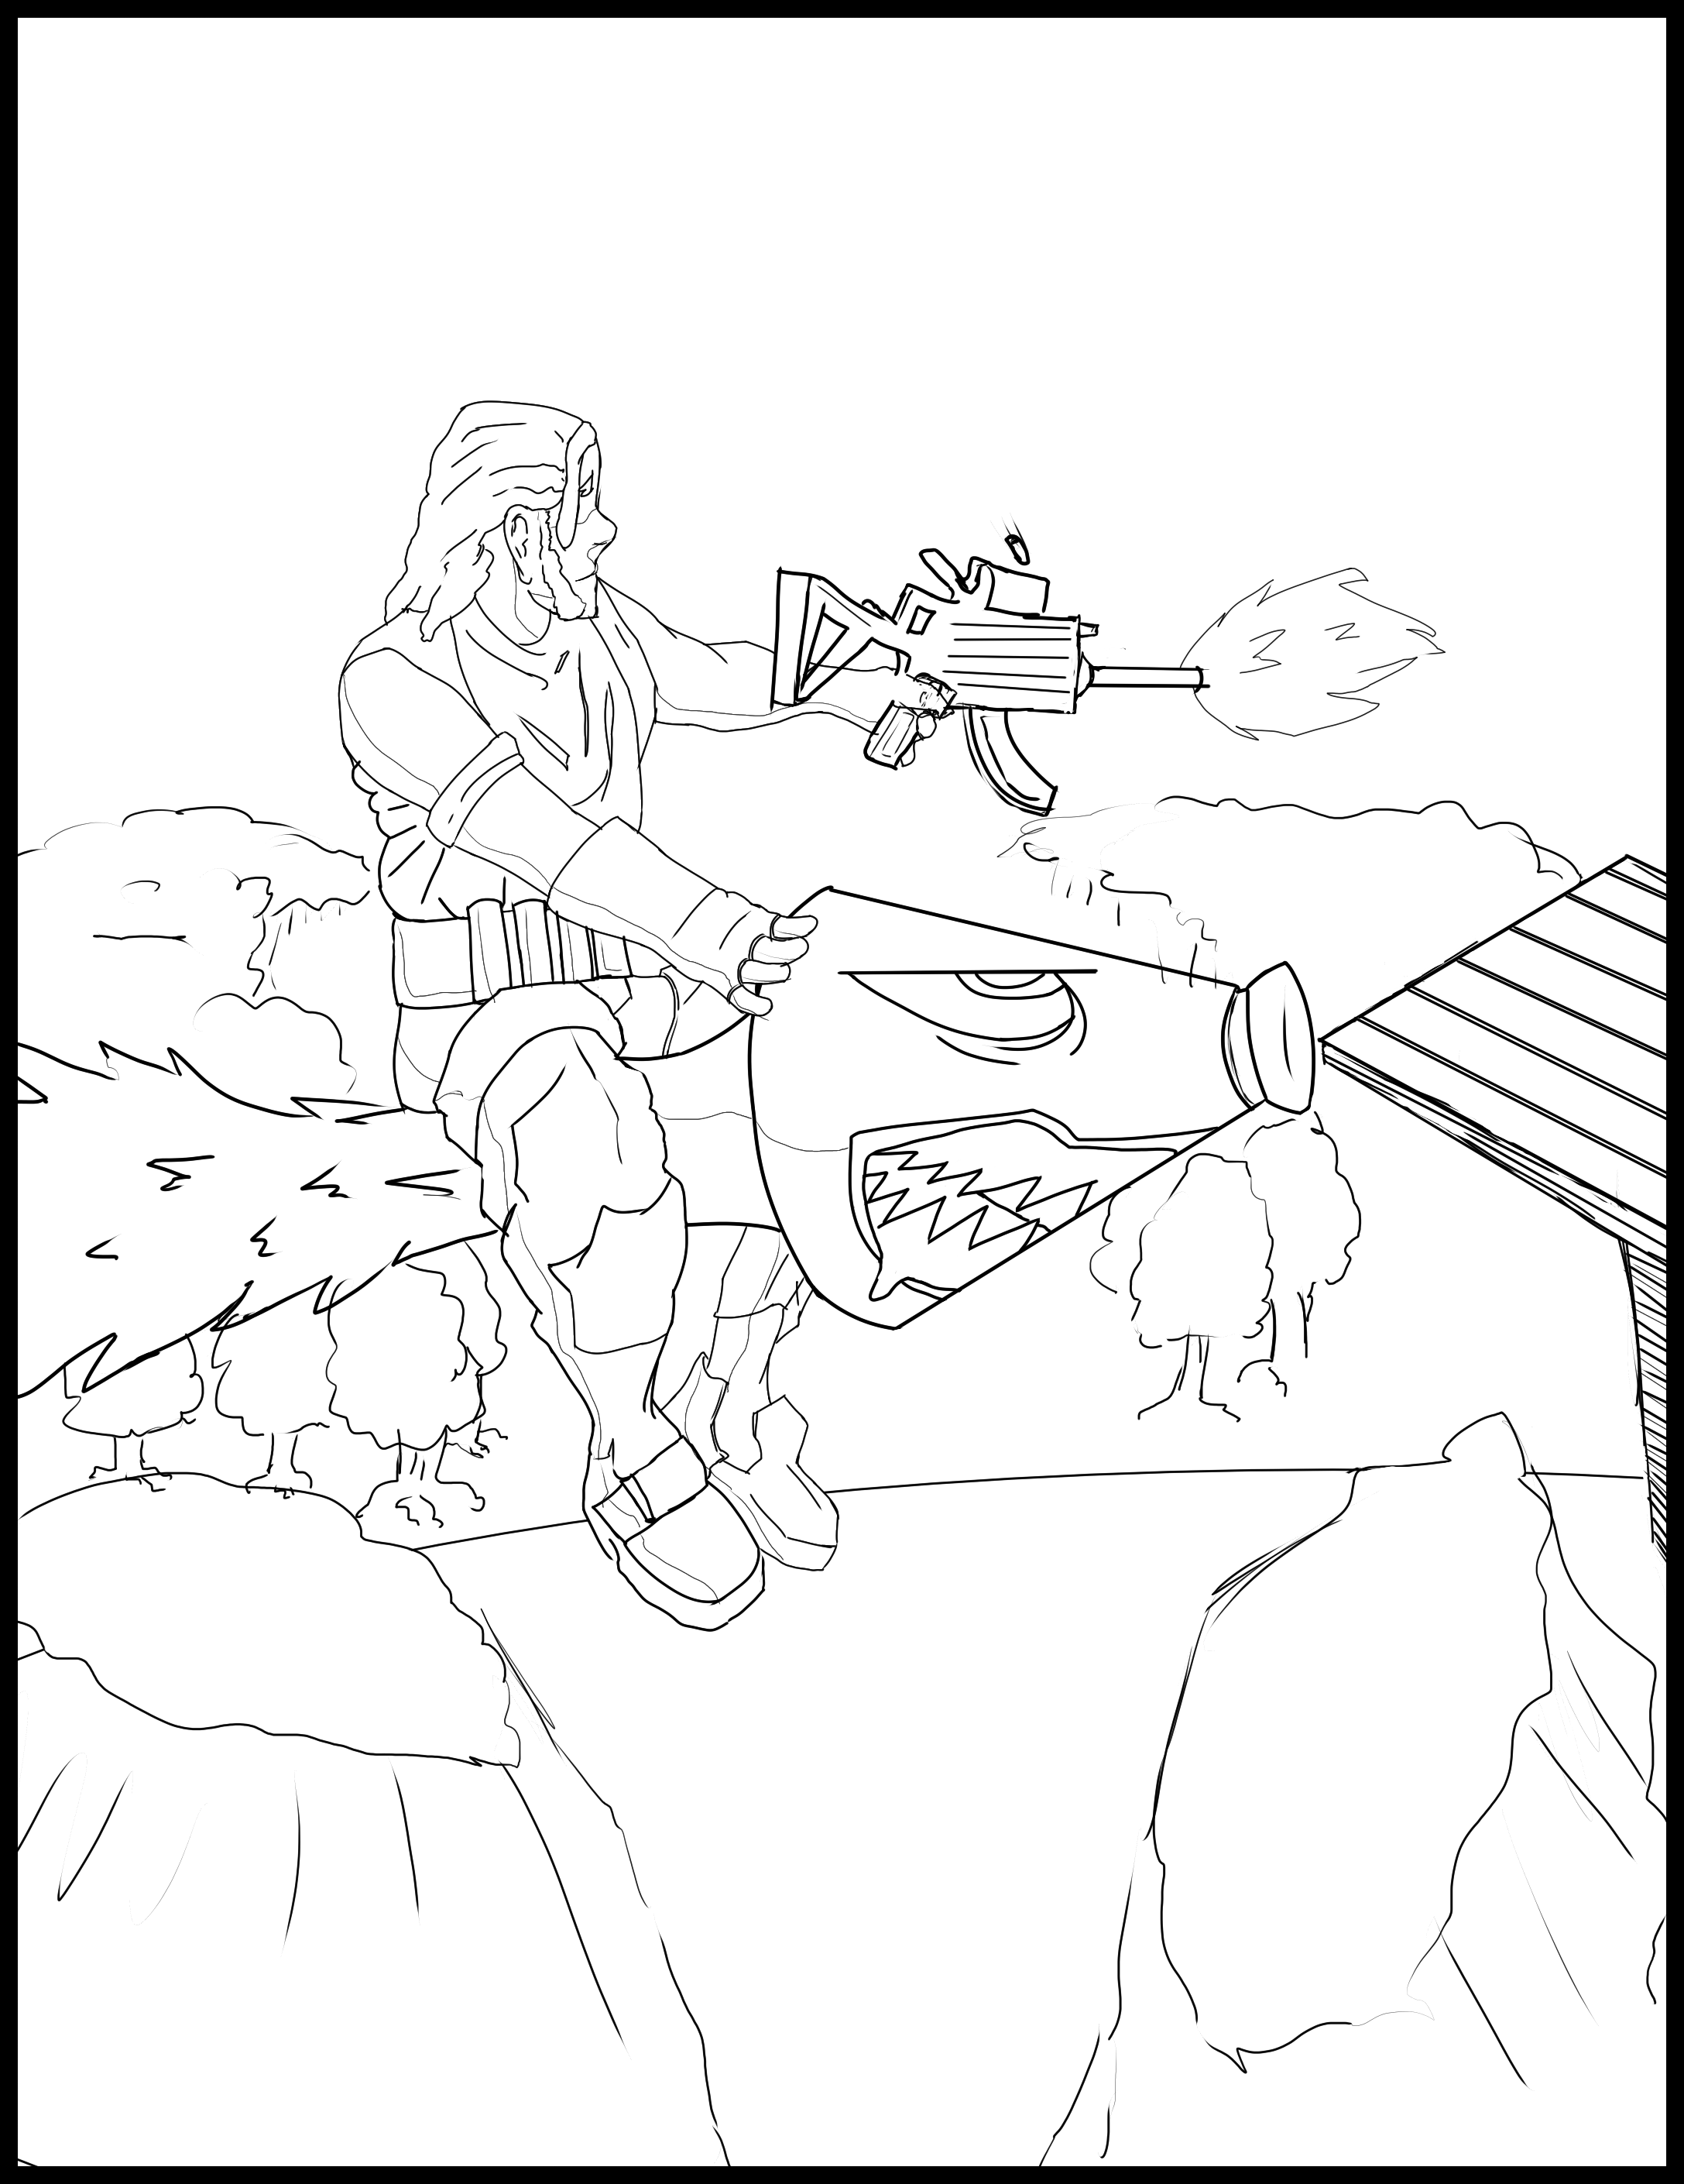 Fortnite Coloring Page (Fan Made) Fun For Kids to Color